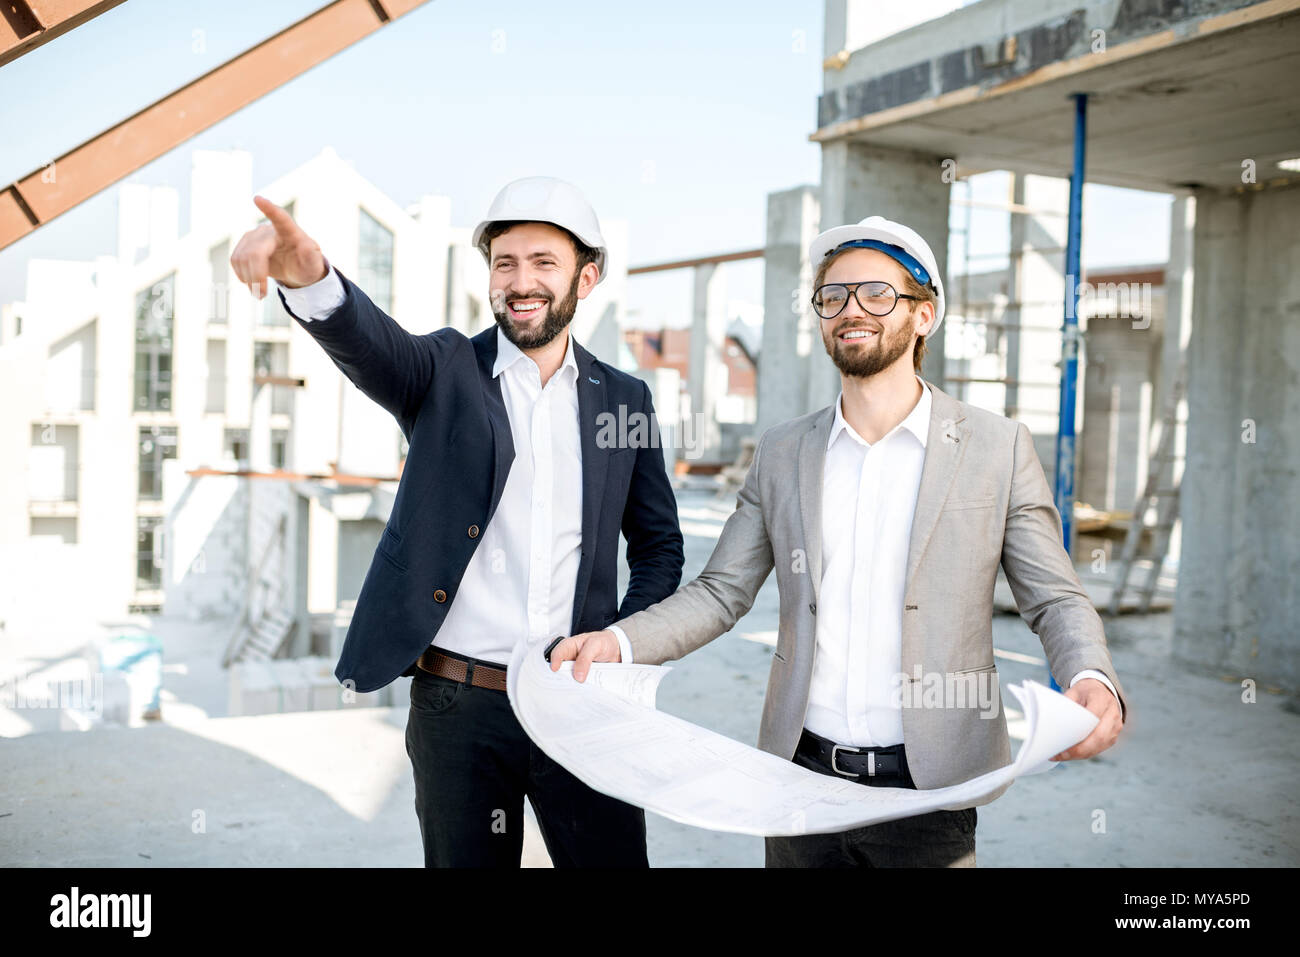 Business people on the structure - Stock Image